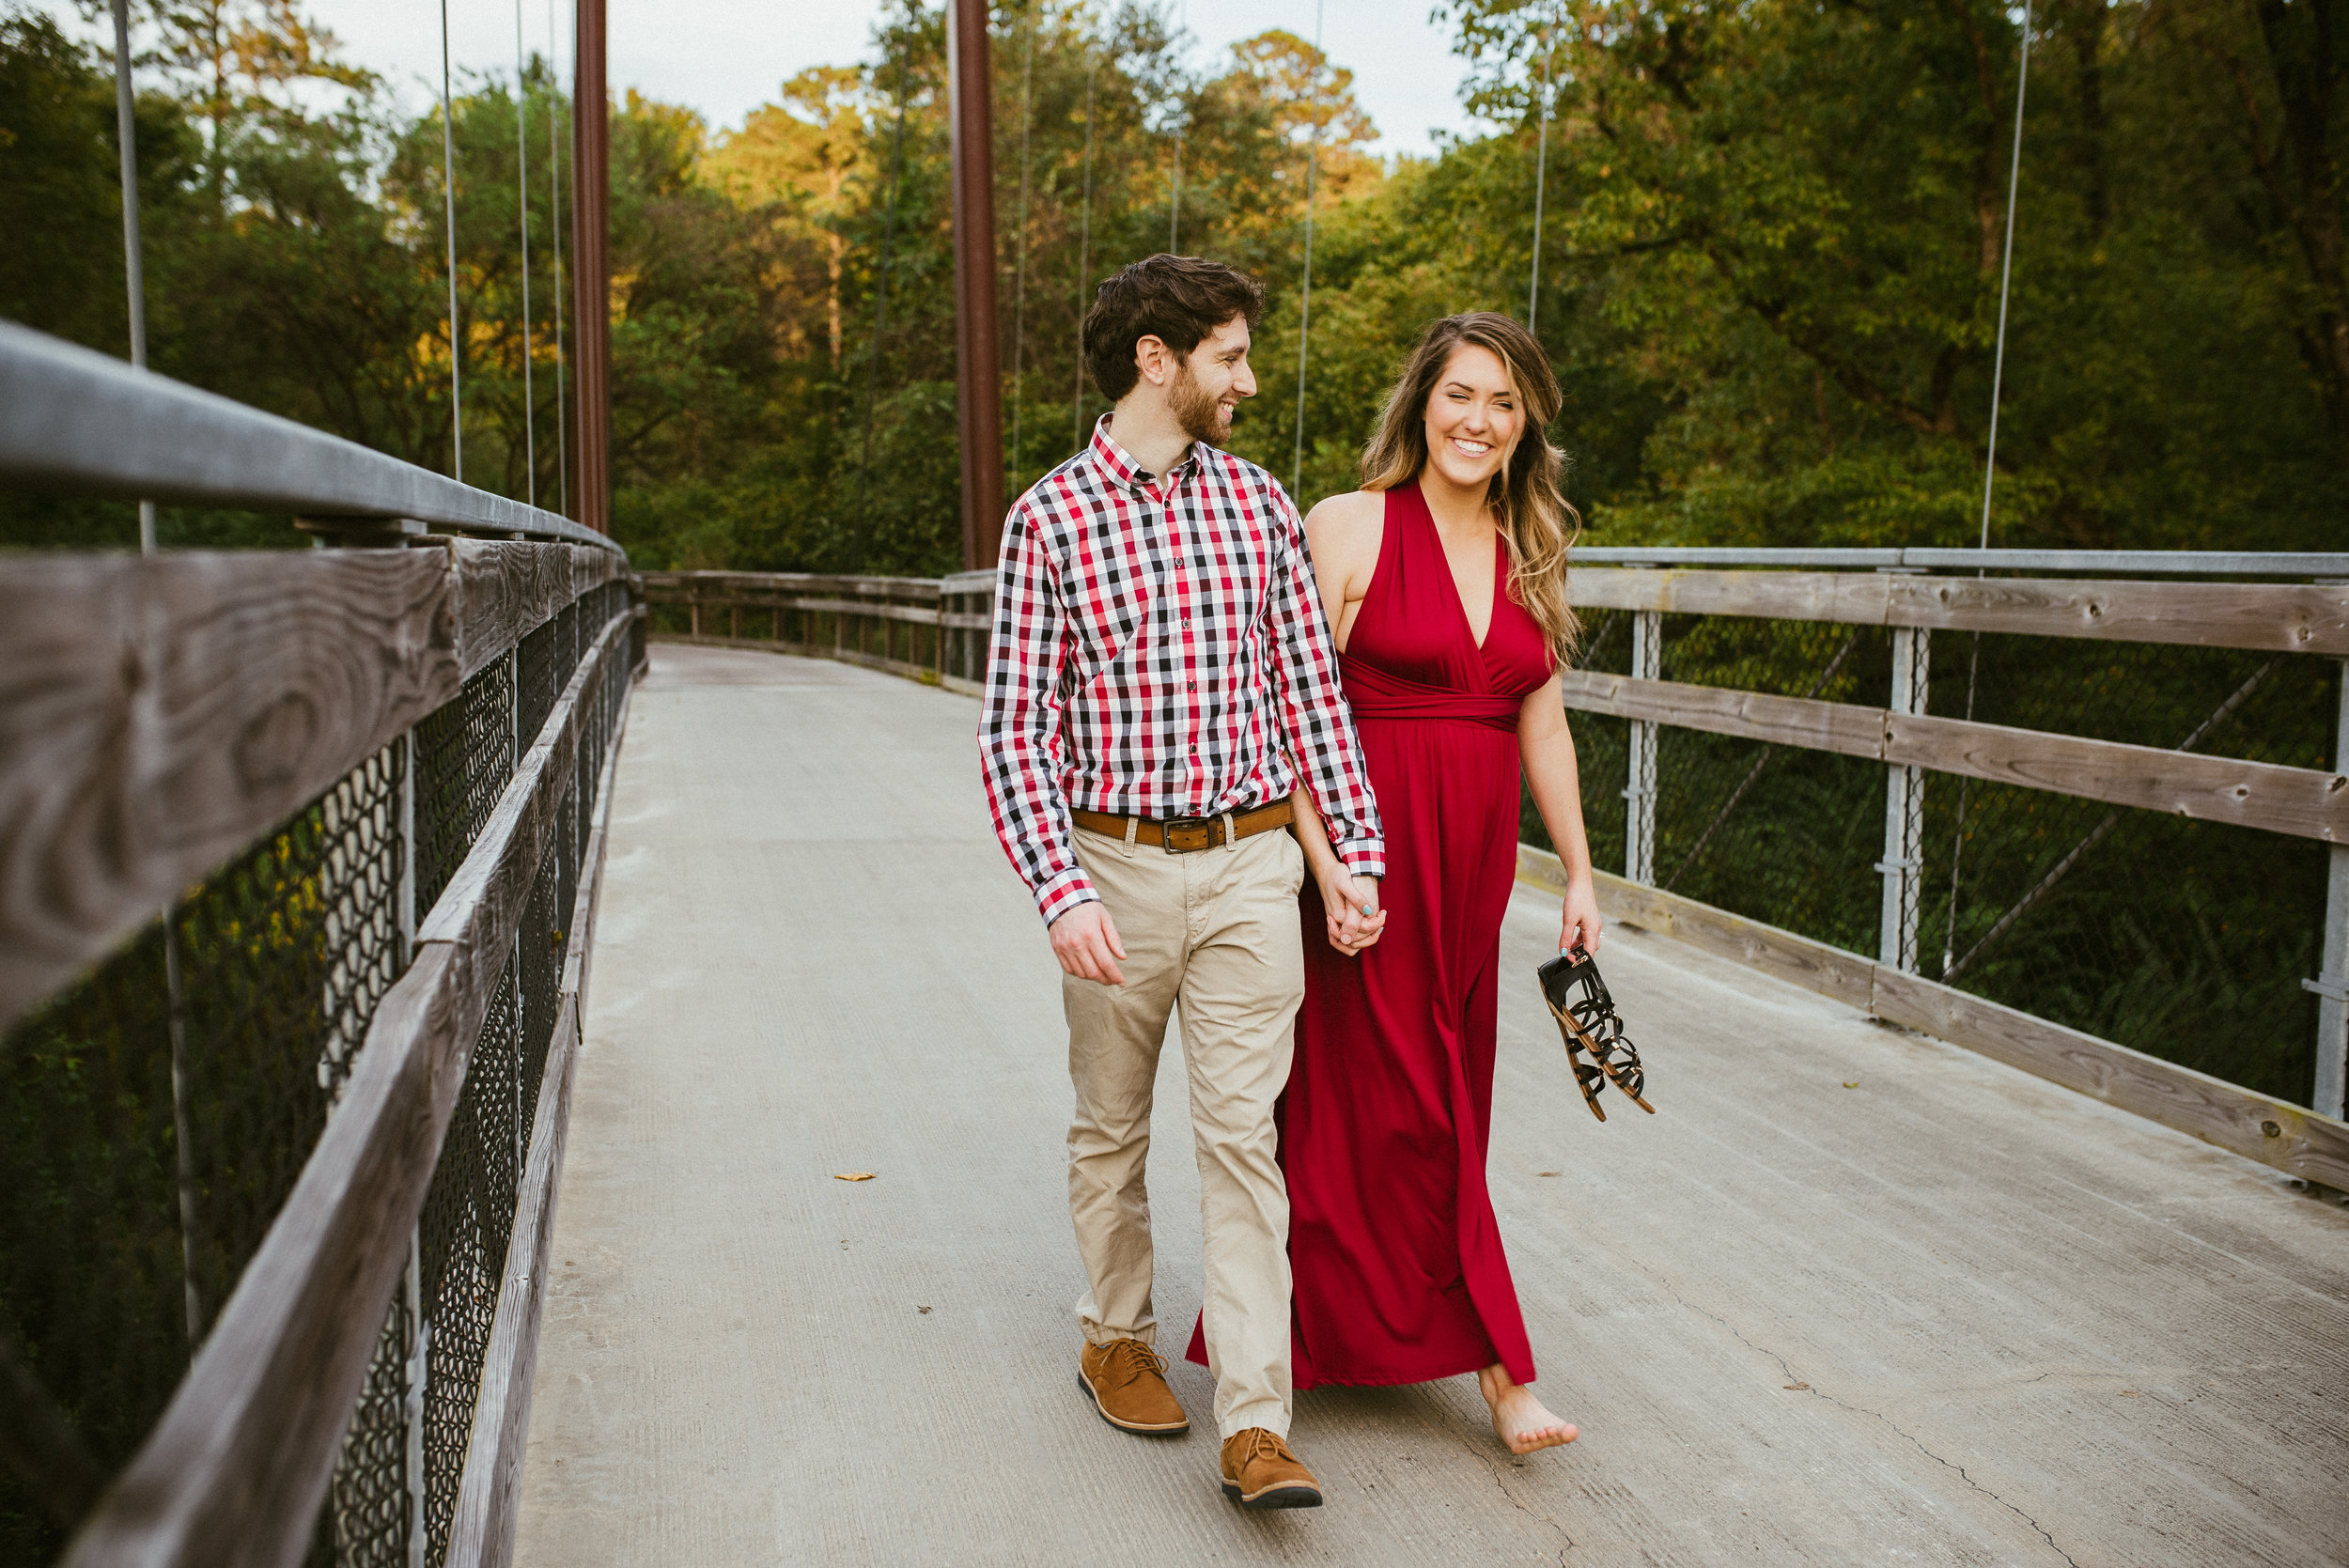 raleigh engagement - raleigh engagement photographer - raleigh bridge